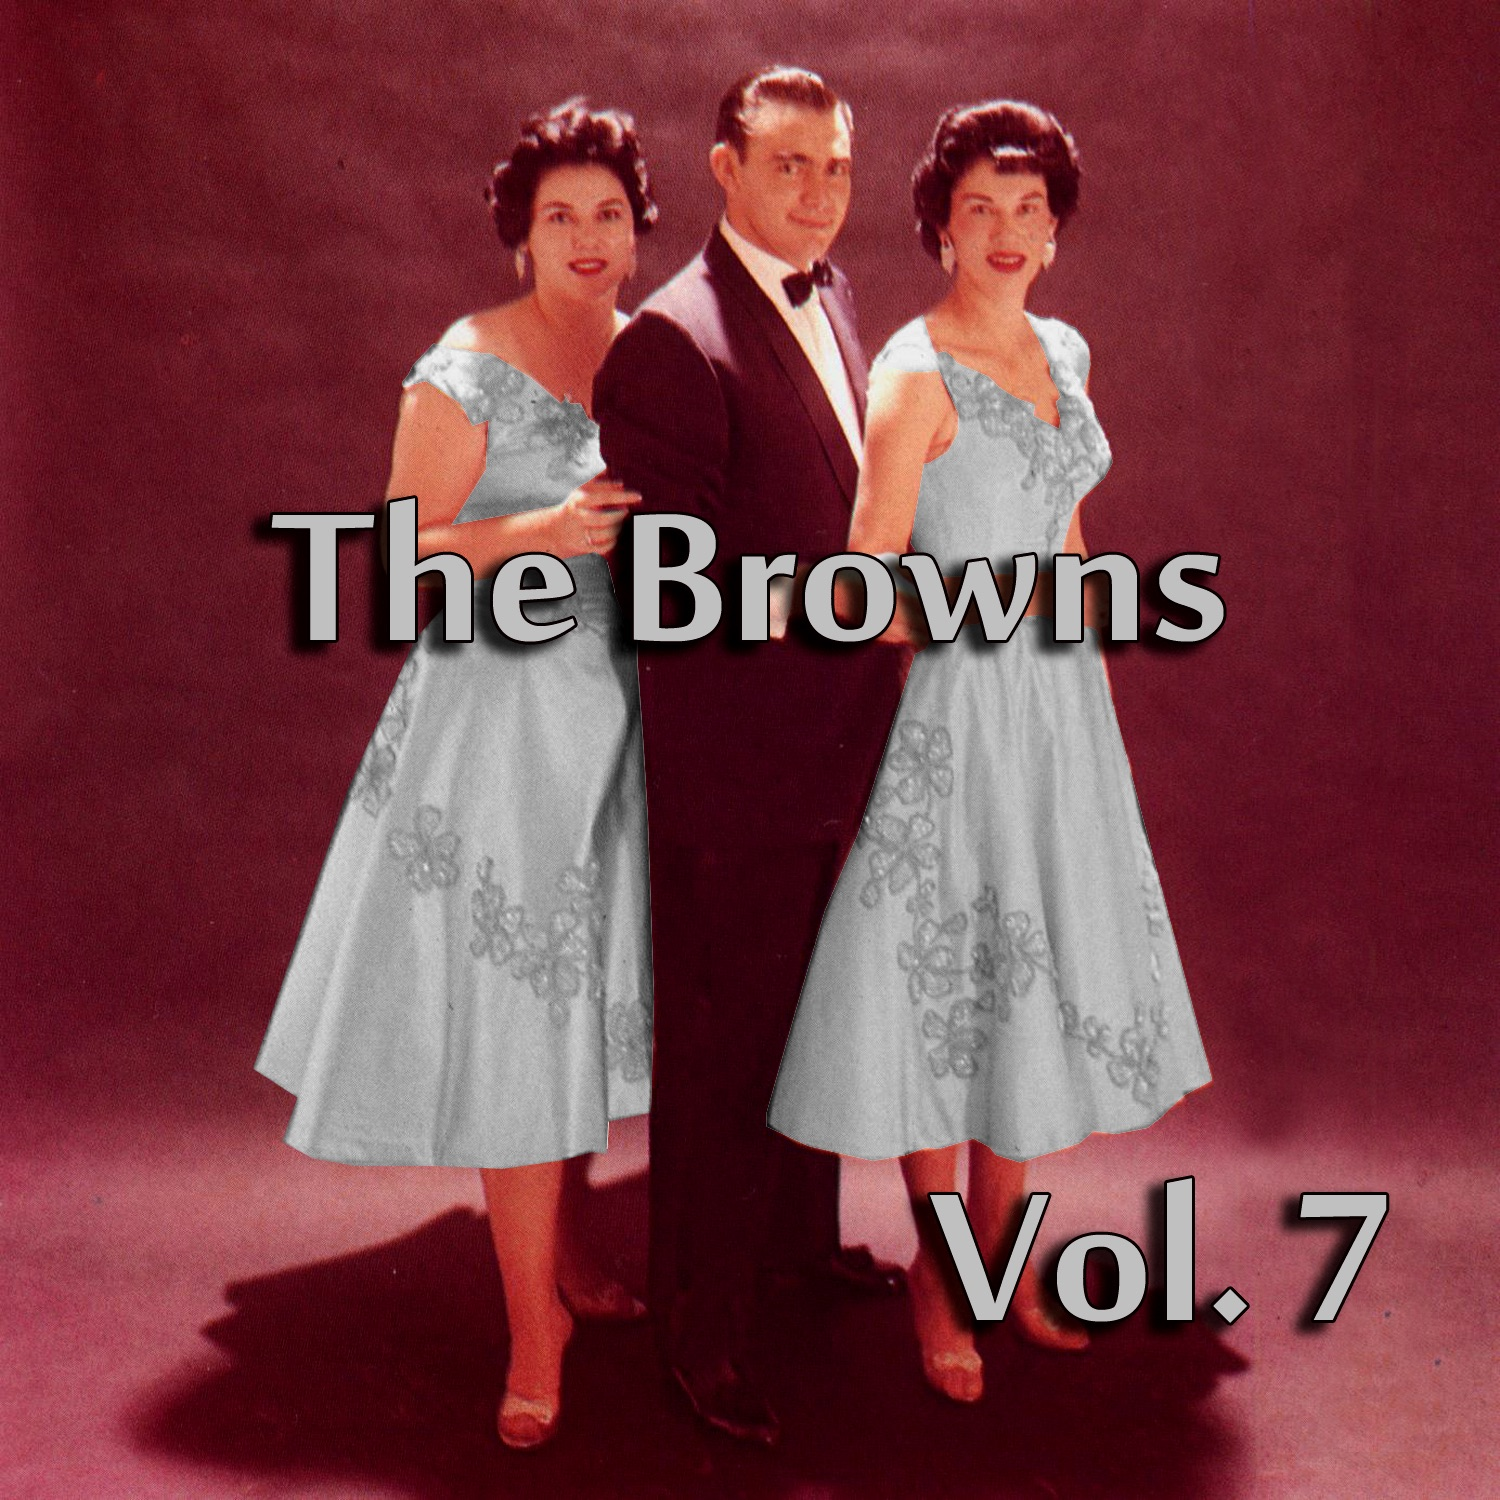 The Browns, Vol. 7